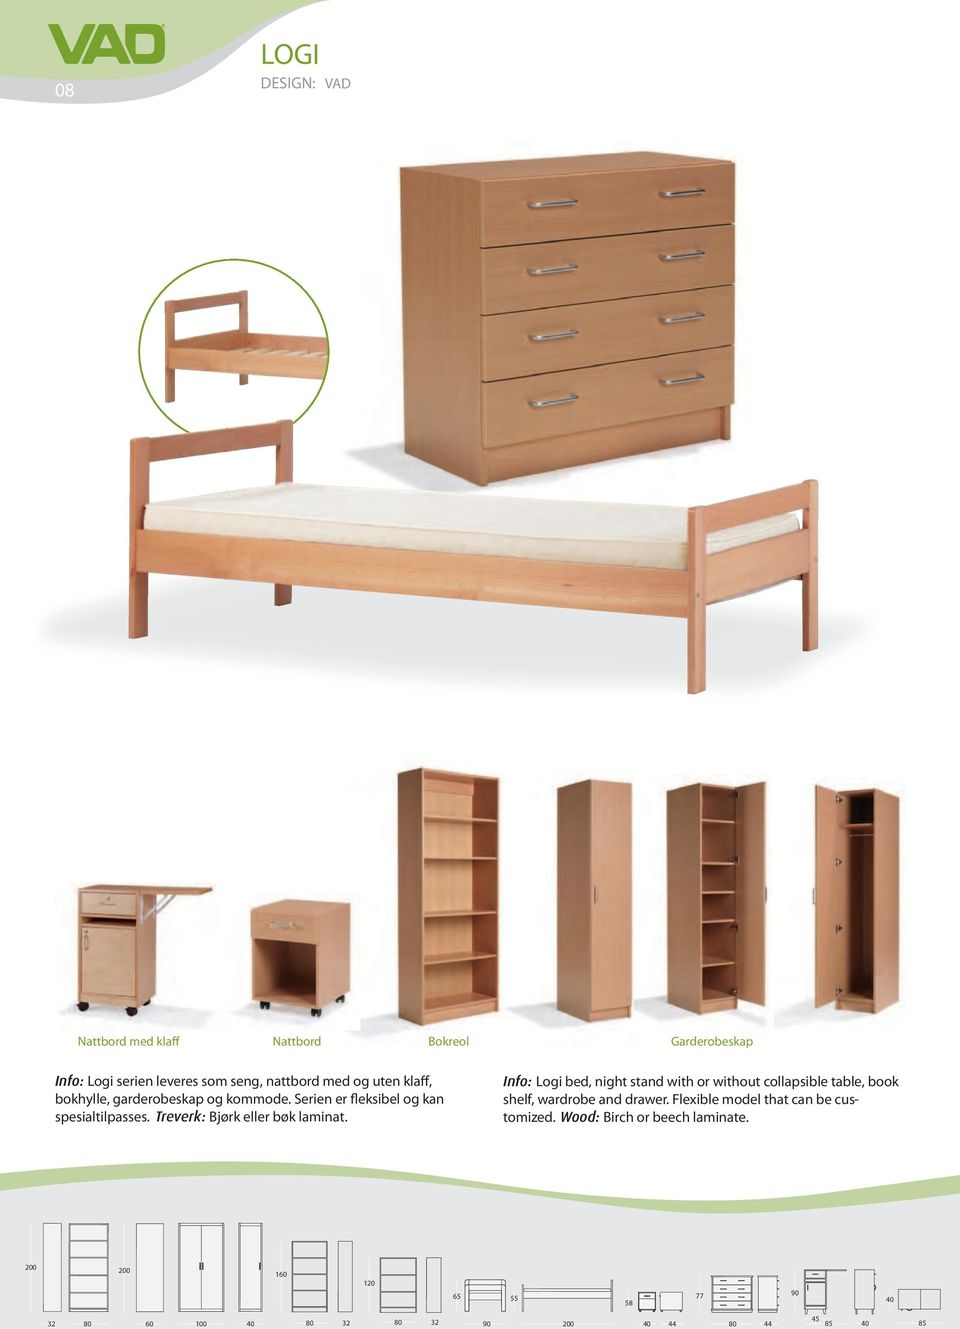 Info: Logi bed, night stand with or without collapsible table, book shelf, wardrobe and drawer.